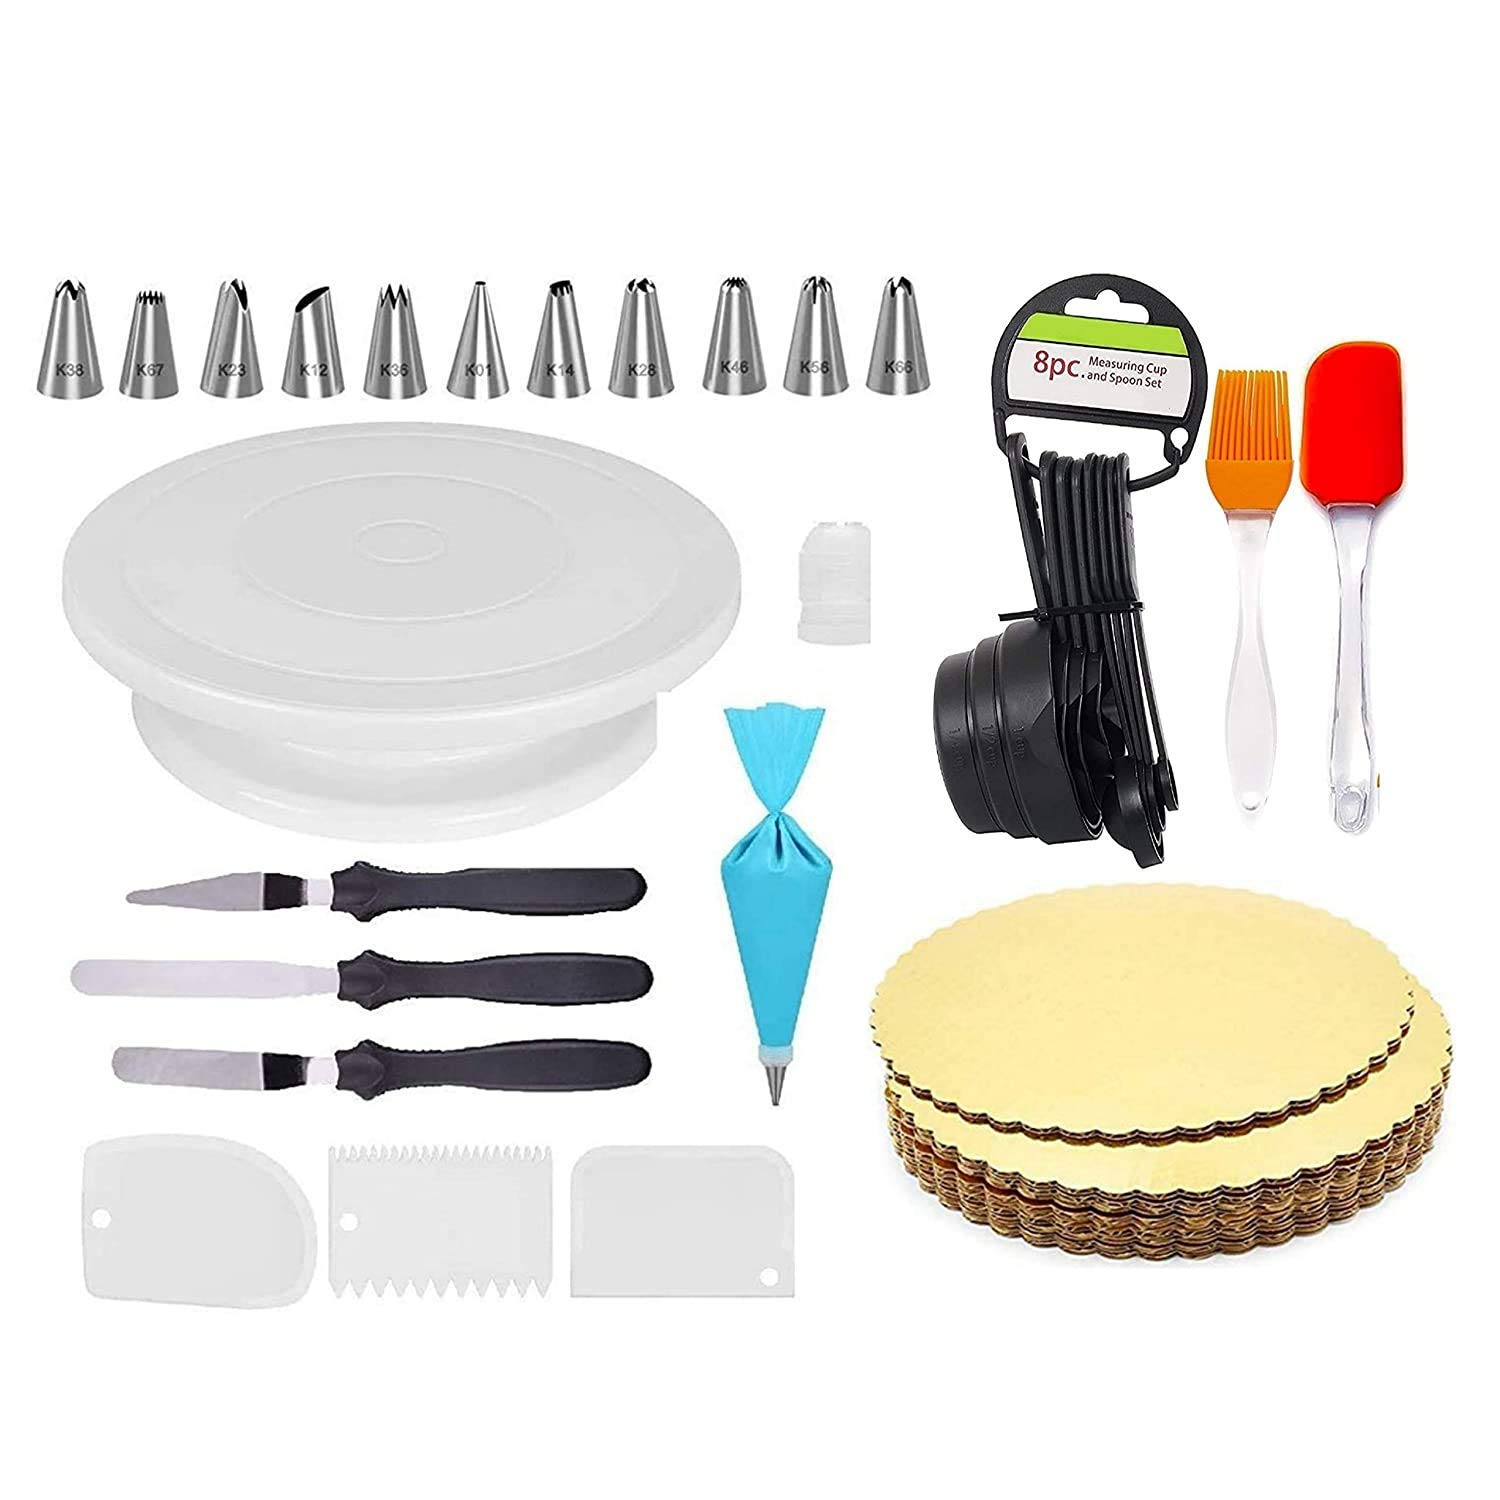 Cake Turntable, 12 Piece Cake Decorating Nozzle Set, 3 In 1 Multi Function Knife Set, 3 Side Scrapper,Cake Board 5 Piece, 8 Measuring Cups And Spoon,